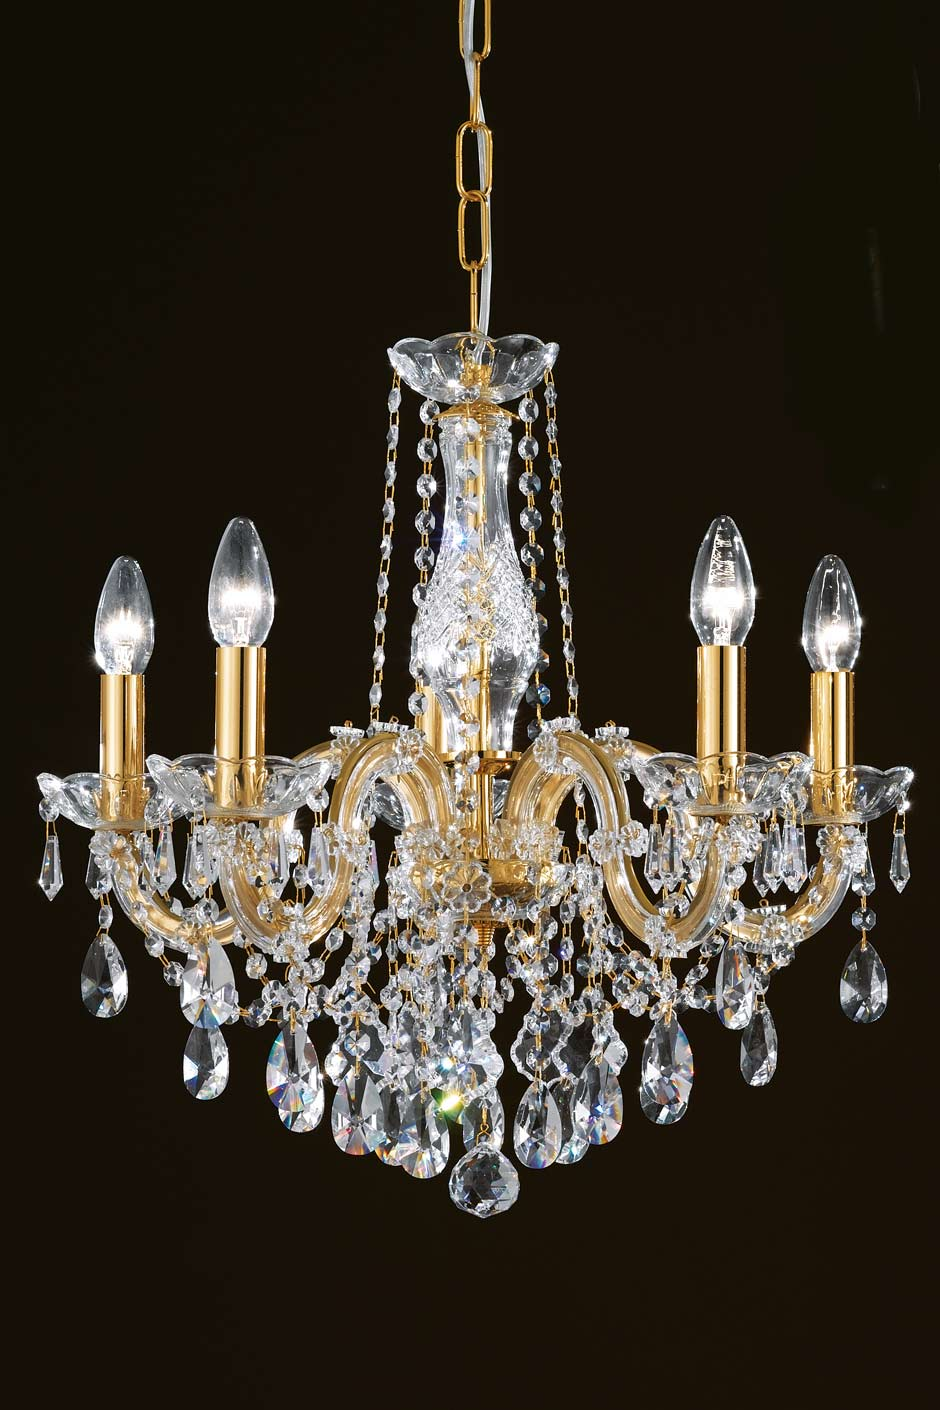 Clear crystal and gold-plated-metal 5-light bouquet chandelier ...